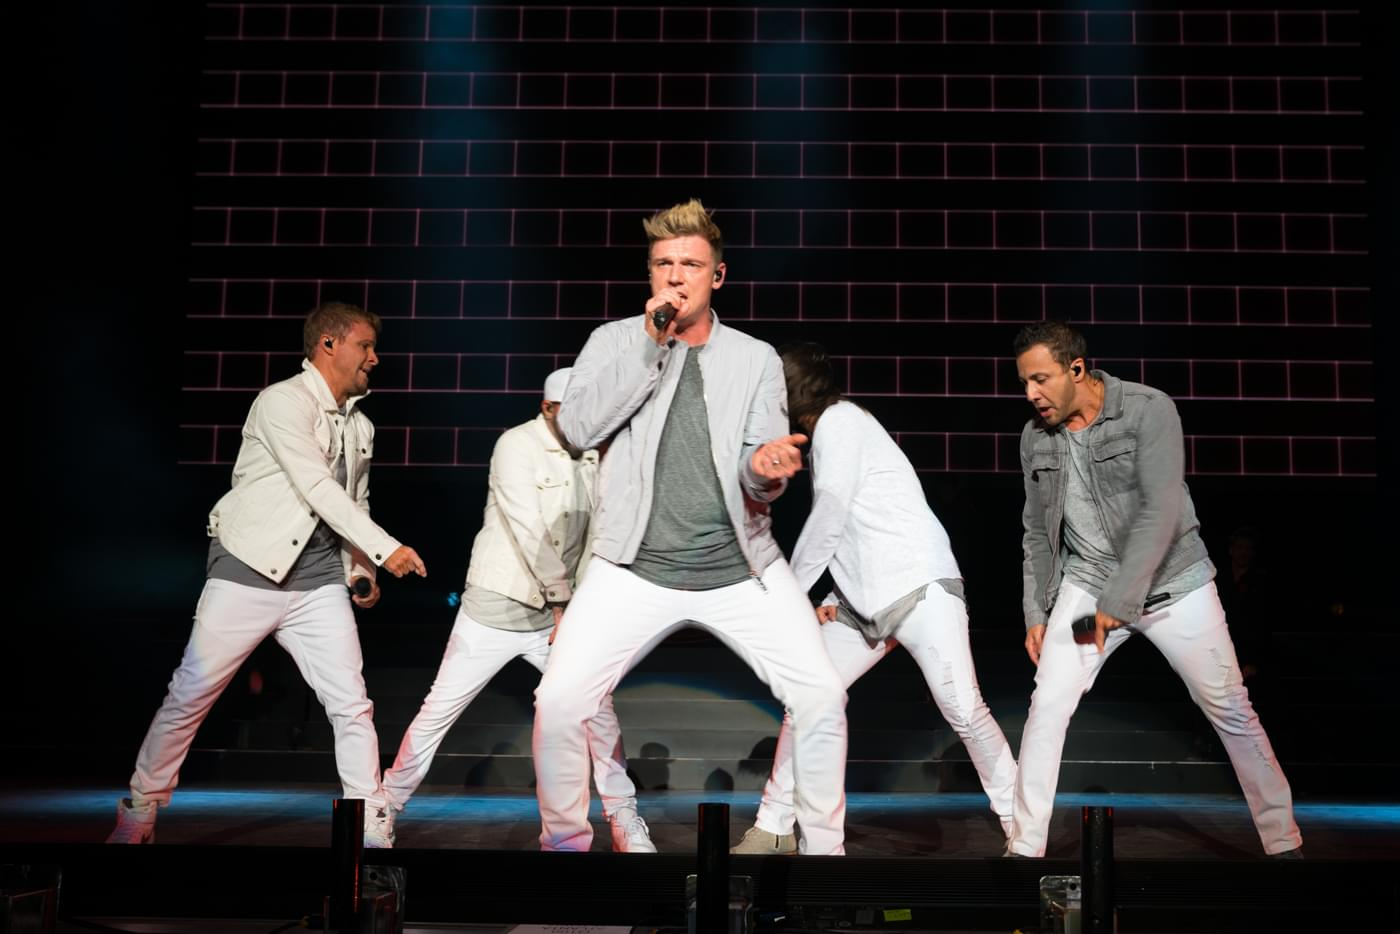 WATCH: The Backstreet Boys Perform on The Tonight Show with Jimmy Fallon